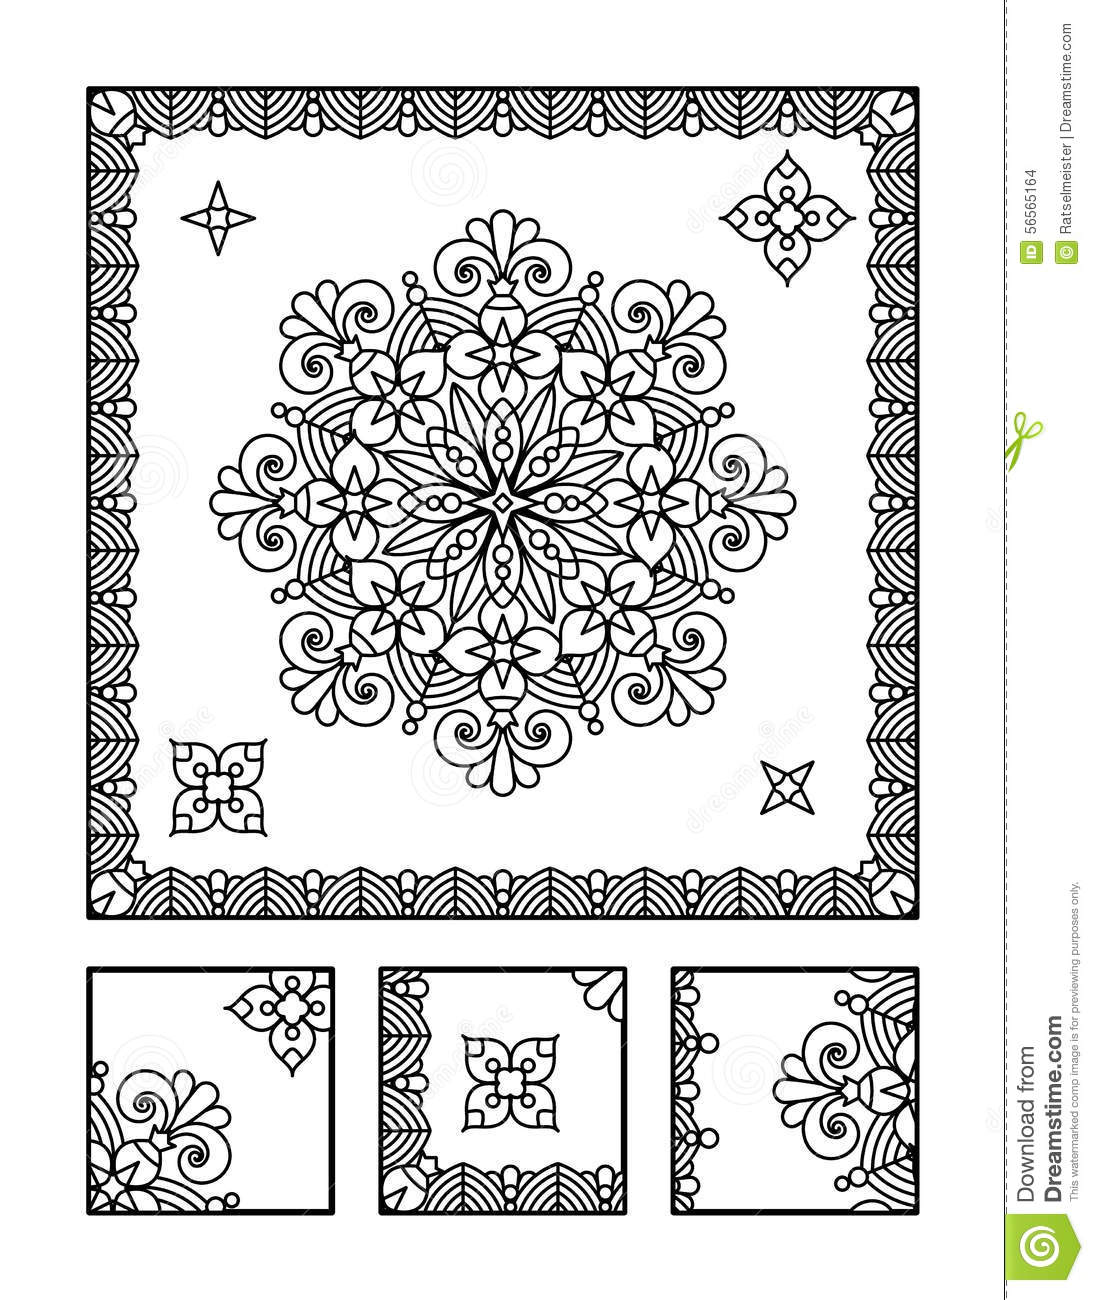 Coloring Page And Visual Puzzle For Adults Stock